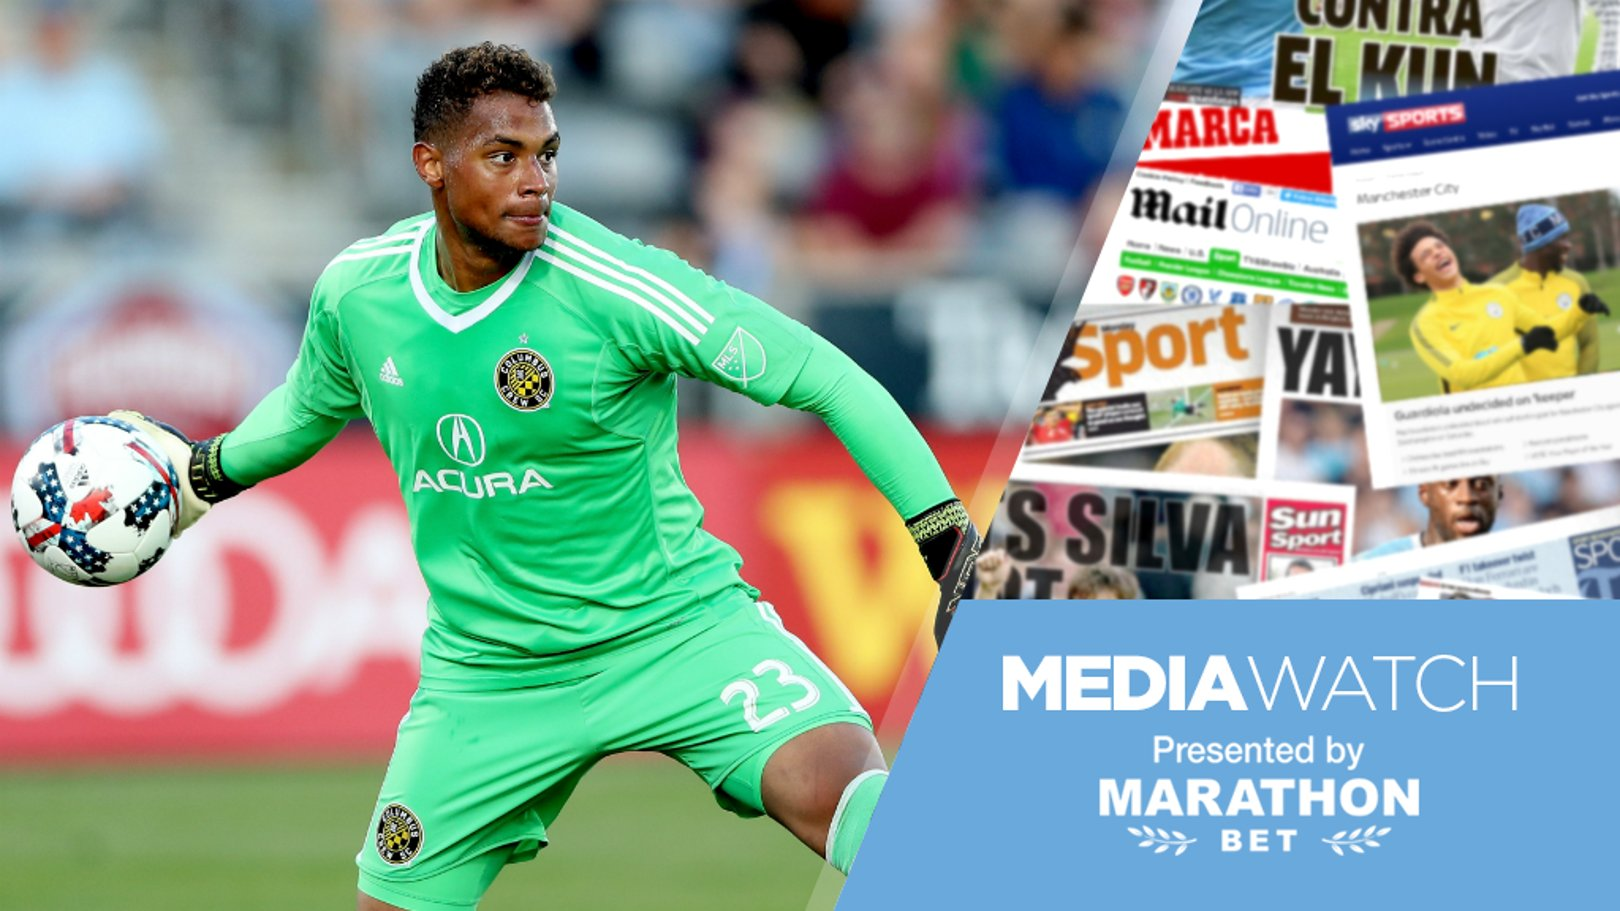 TARGET?: It's claimed City are in talks with Zack Steffen